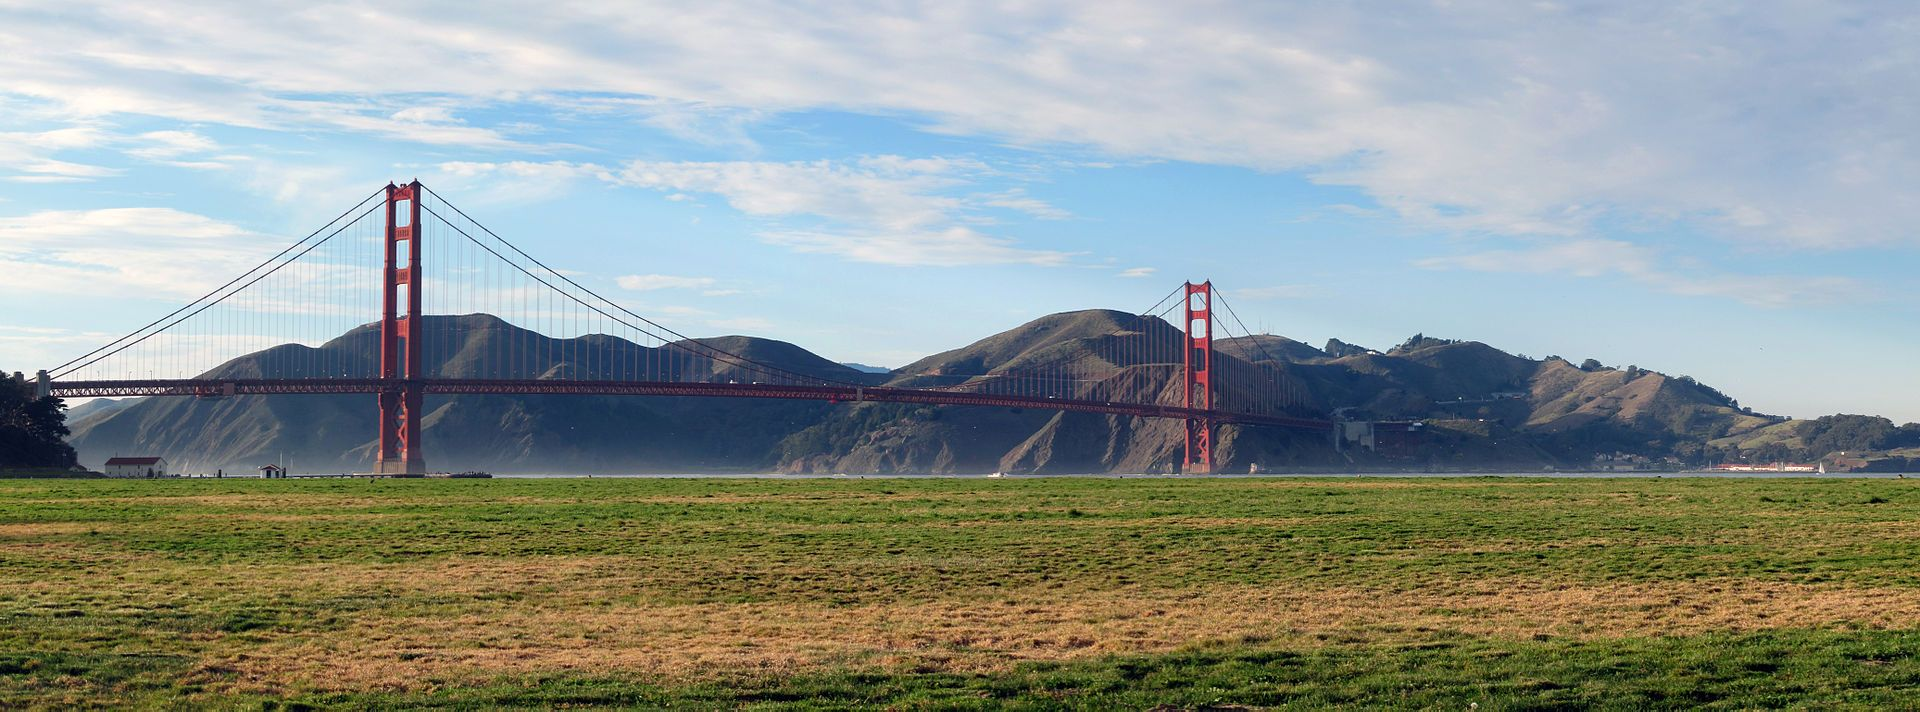 Crissy Field with Golden Gate Bridge and Marin Headlands - Crissy Field - Wikipedia, the free encyclopedia